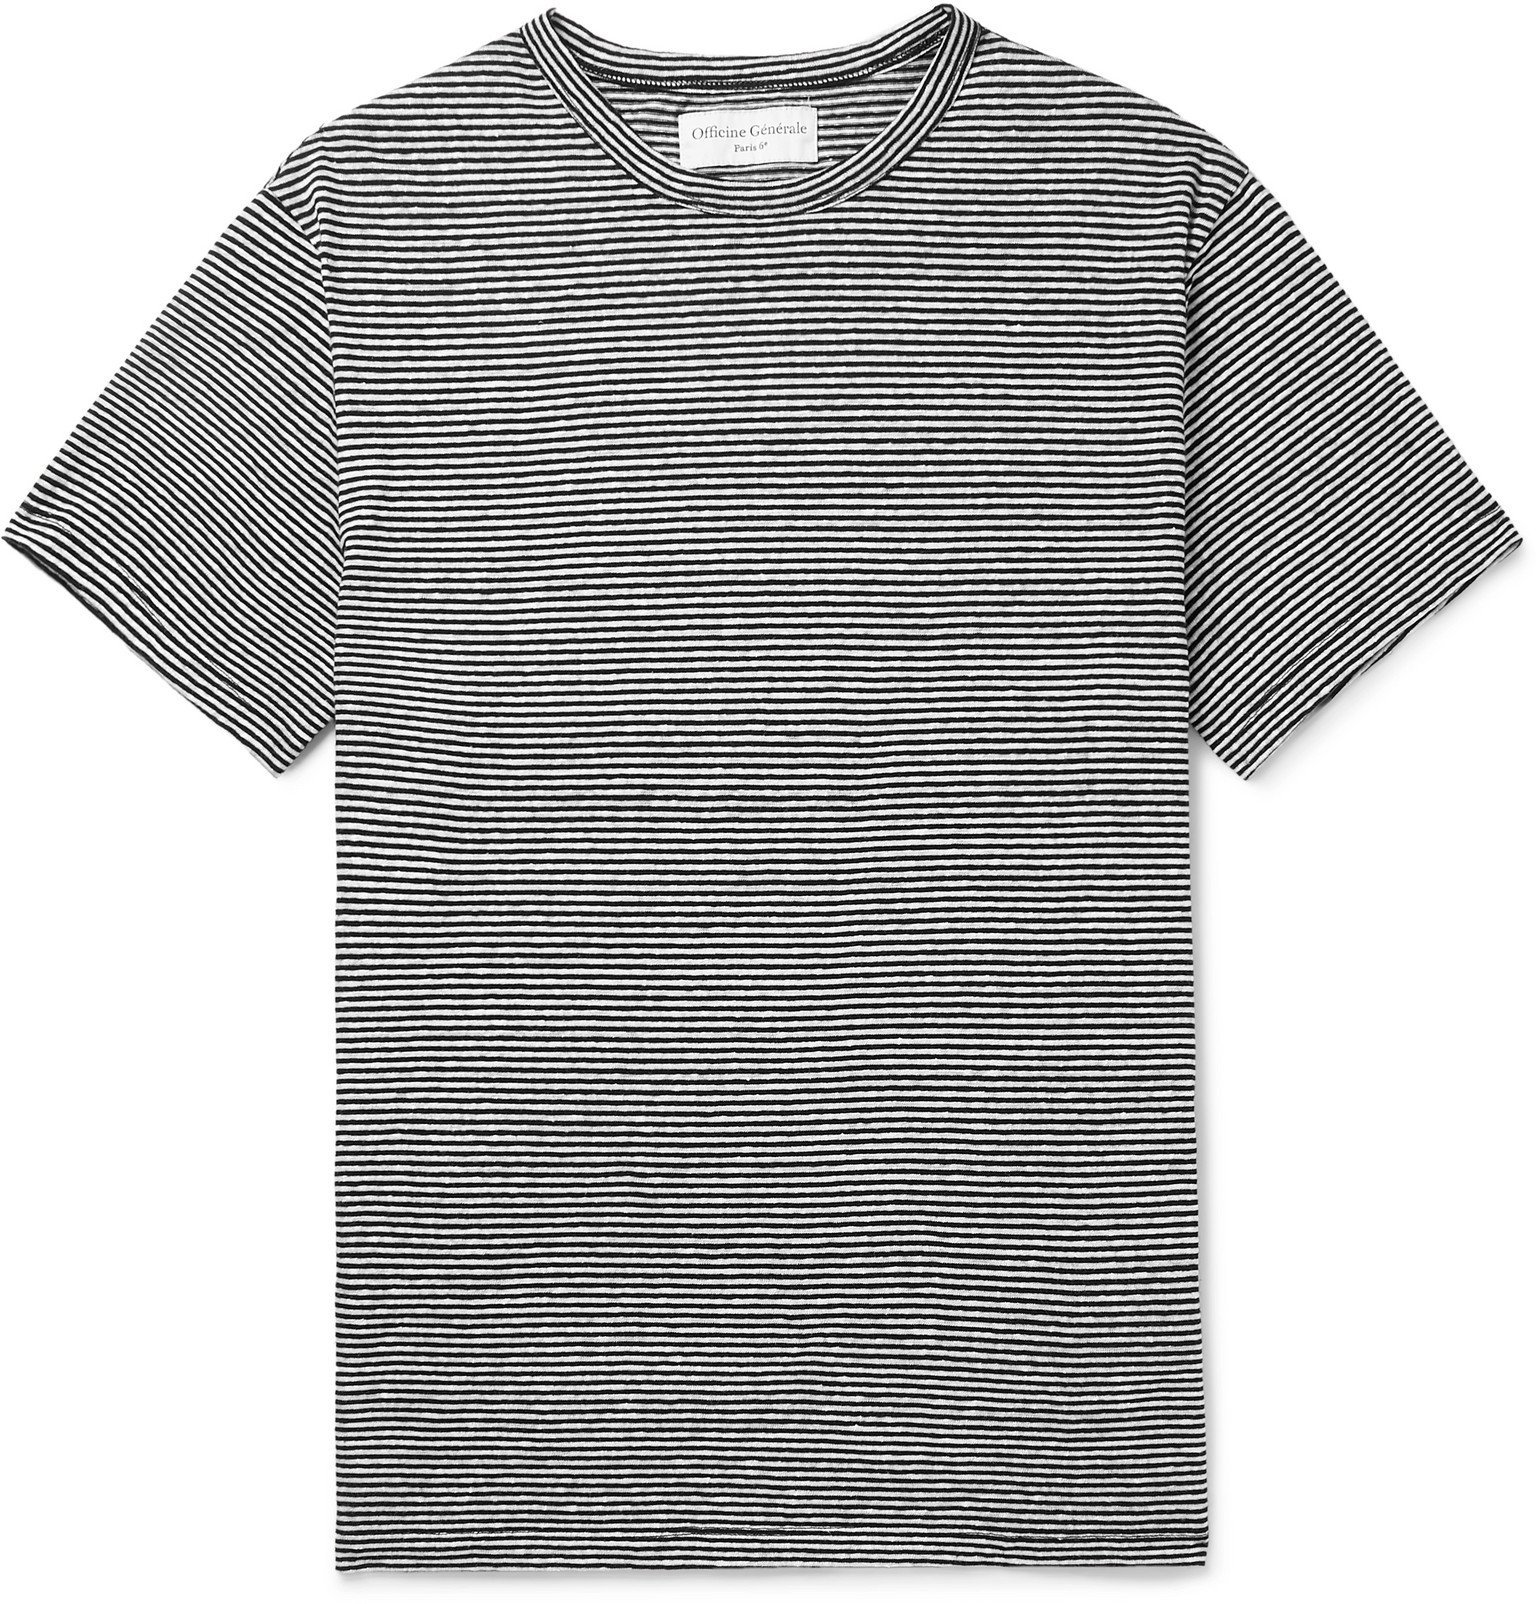 Photo: Officine Generale - Striped Cotton-Jersey T-Shirt - White